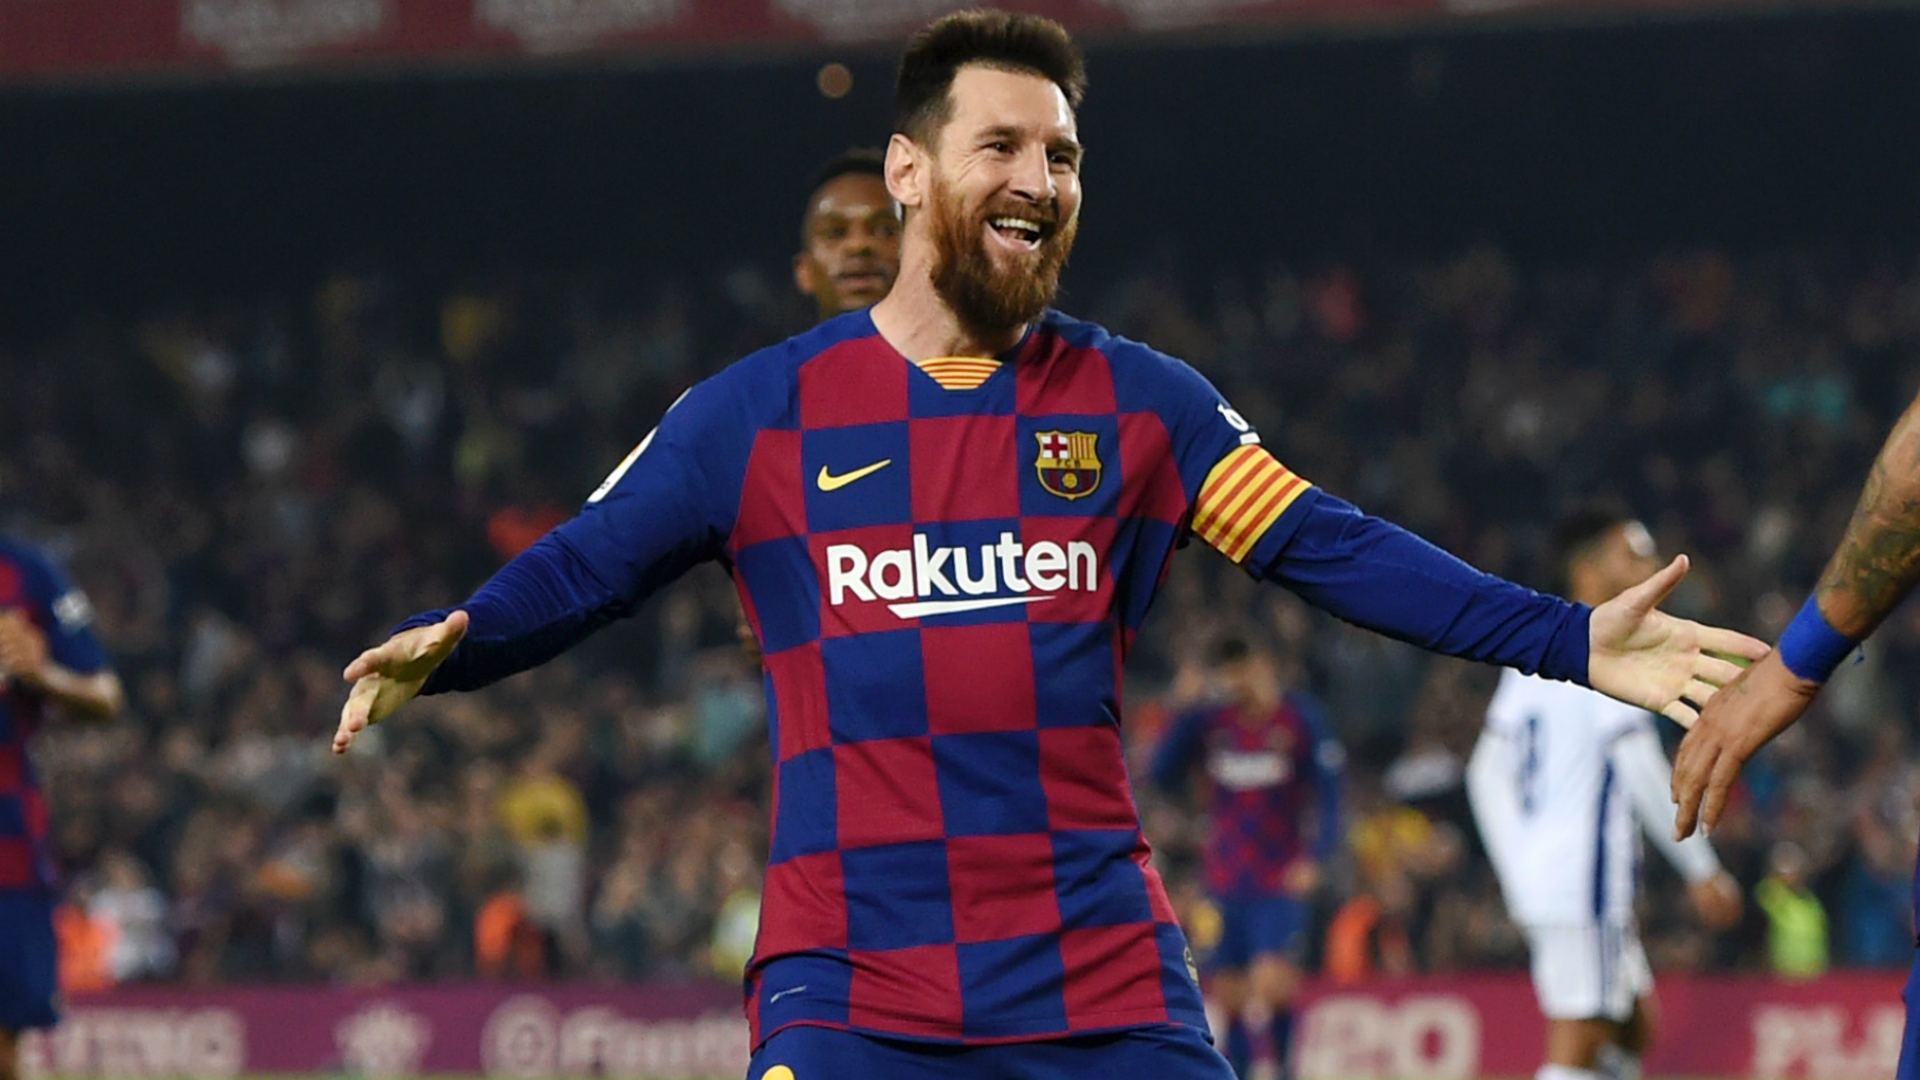 'Messi is from another planet' - Vidal praises Barcelona star's dominance